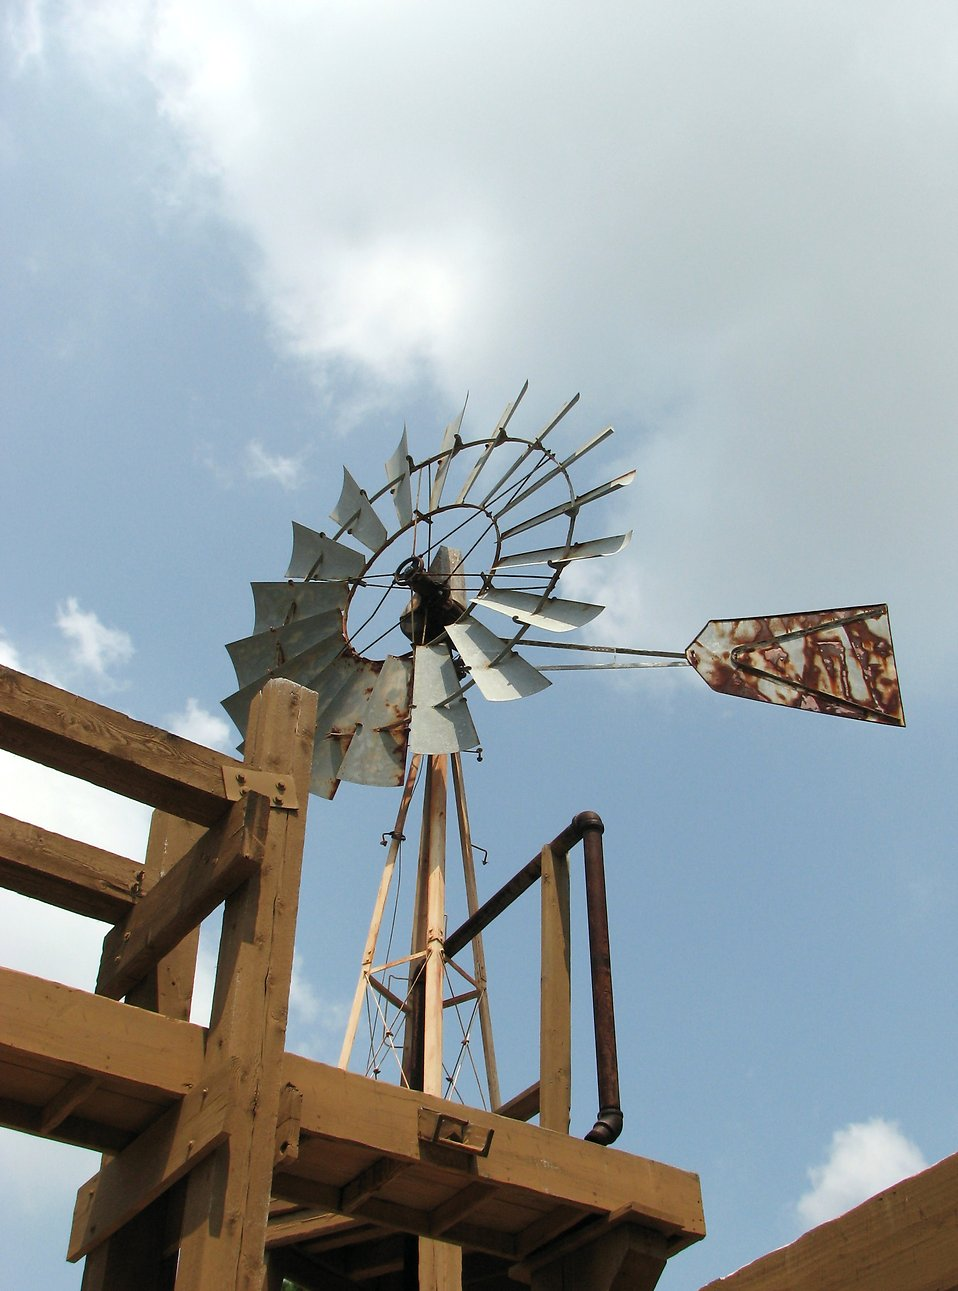 An old farm windmill in a blue cloudy sky : Free Stock Photo